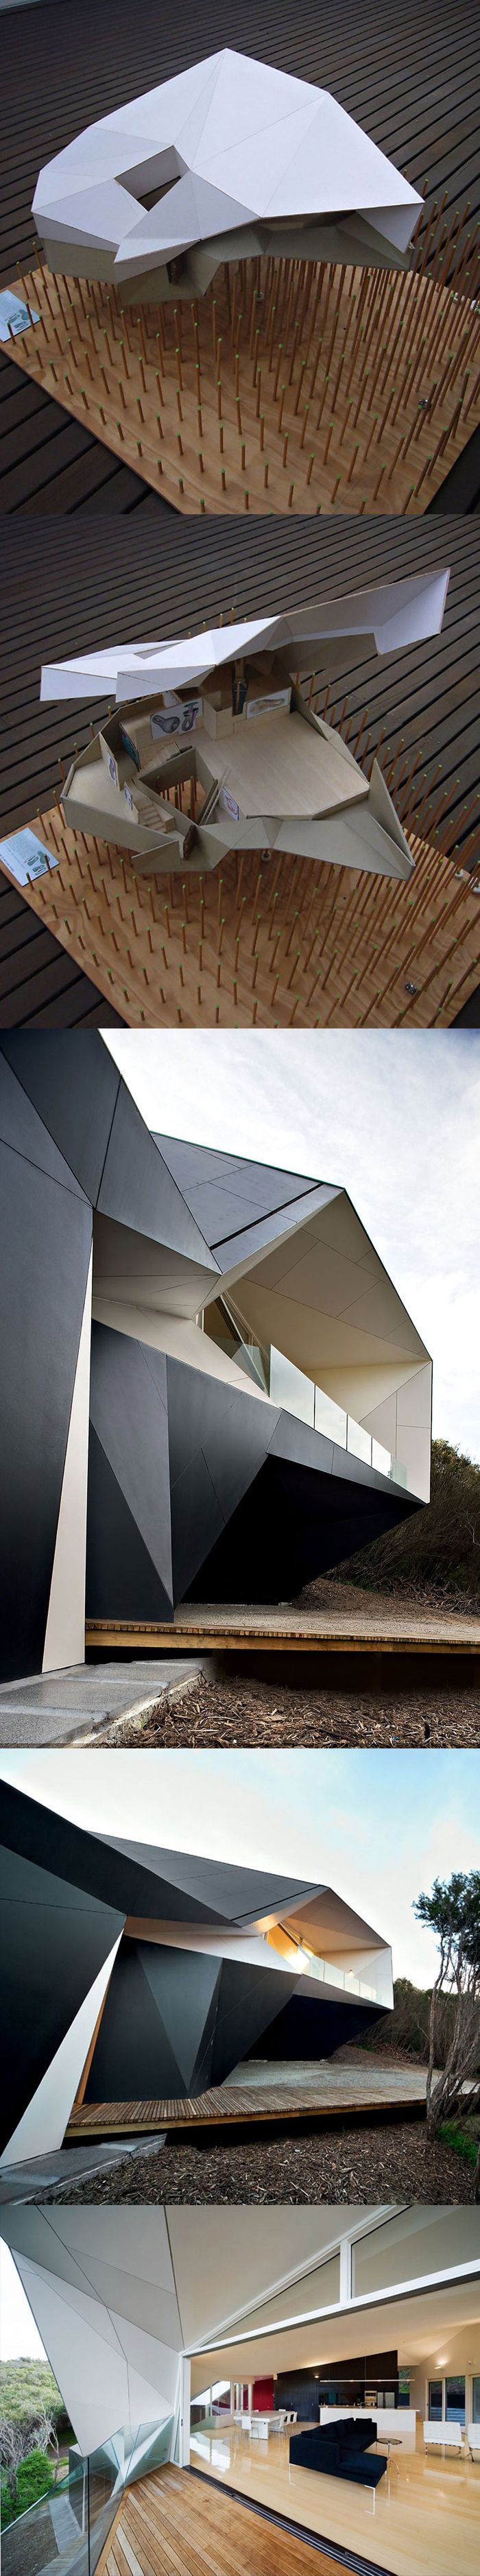 Architecture of Klein Bottle House by McBride Charles Ryan.